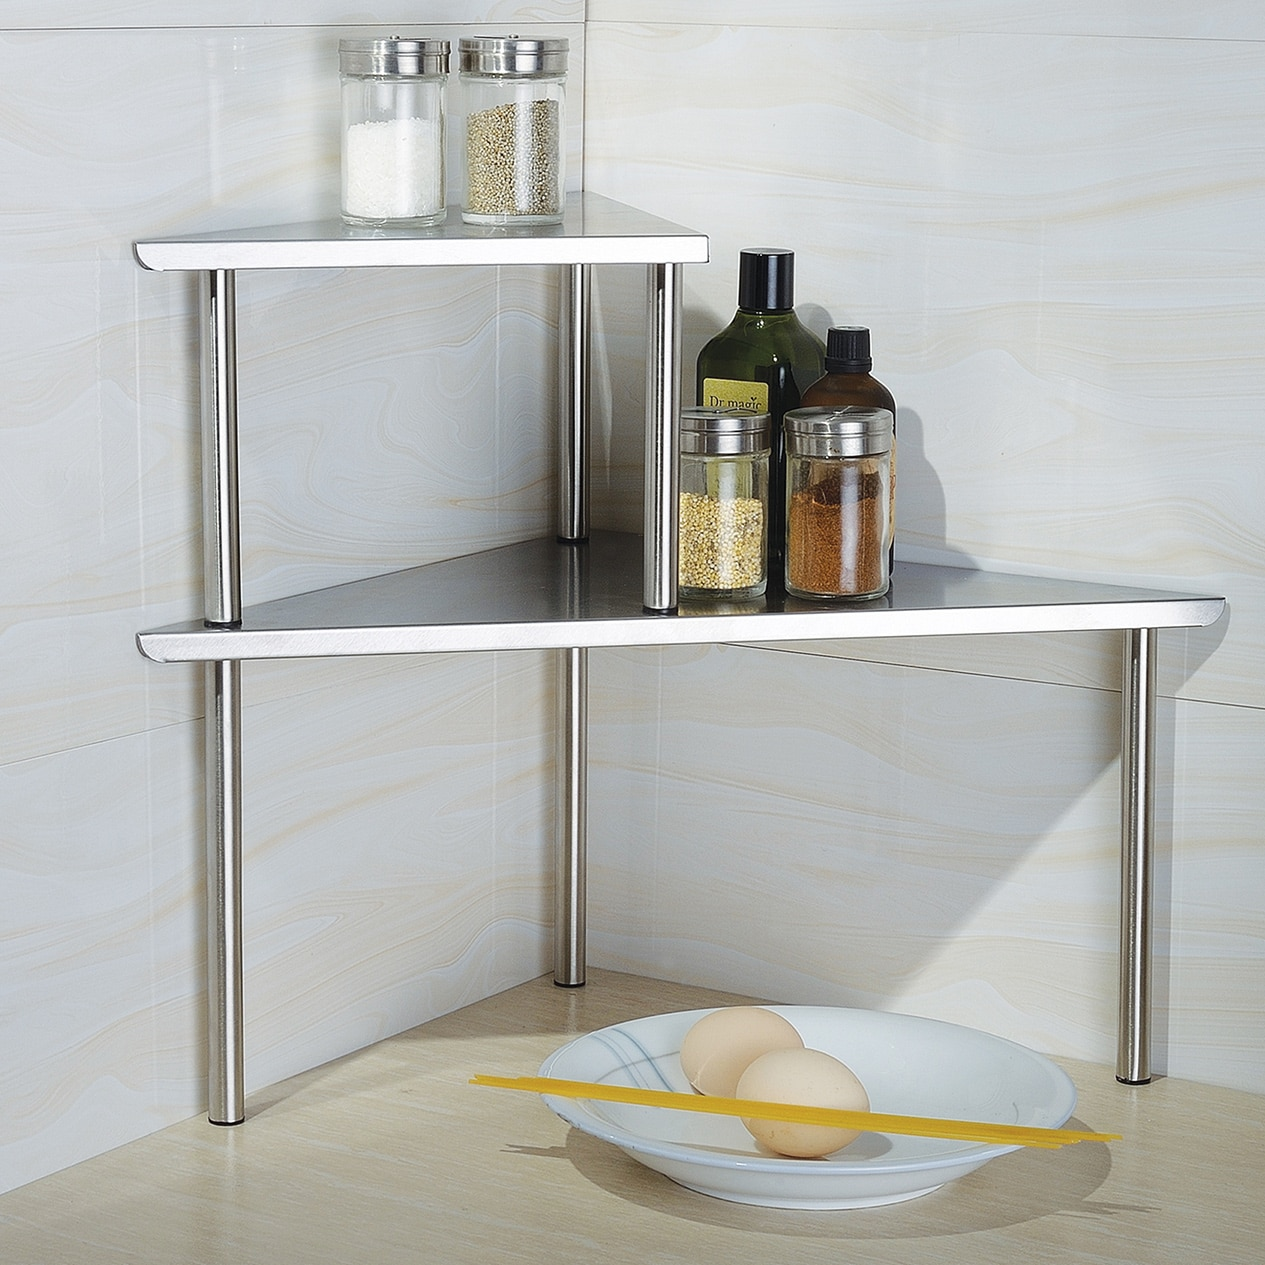 storage shelf stainless steel caddy organizer kitchen counter bath